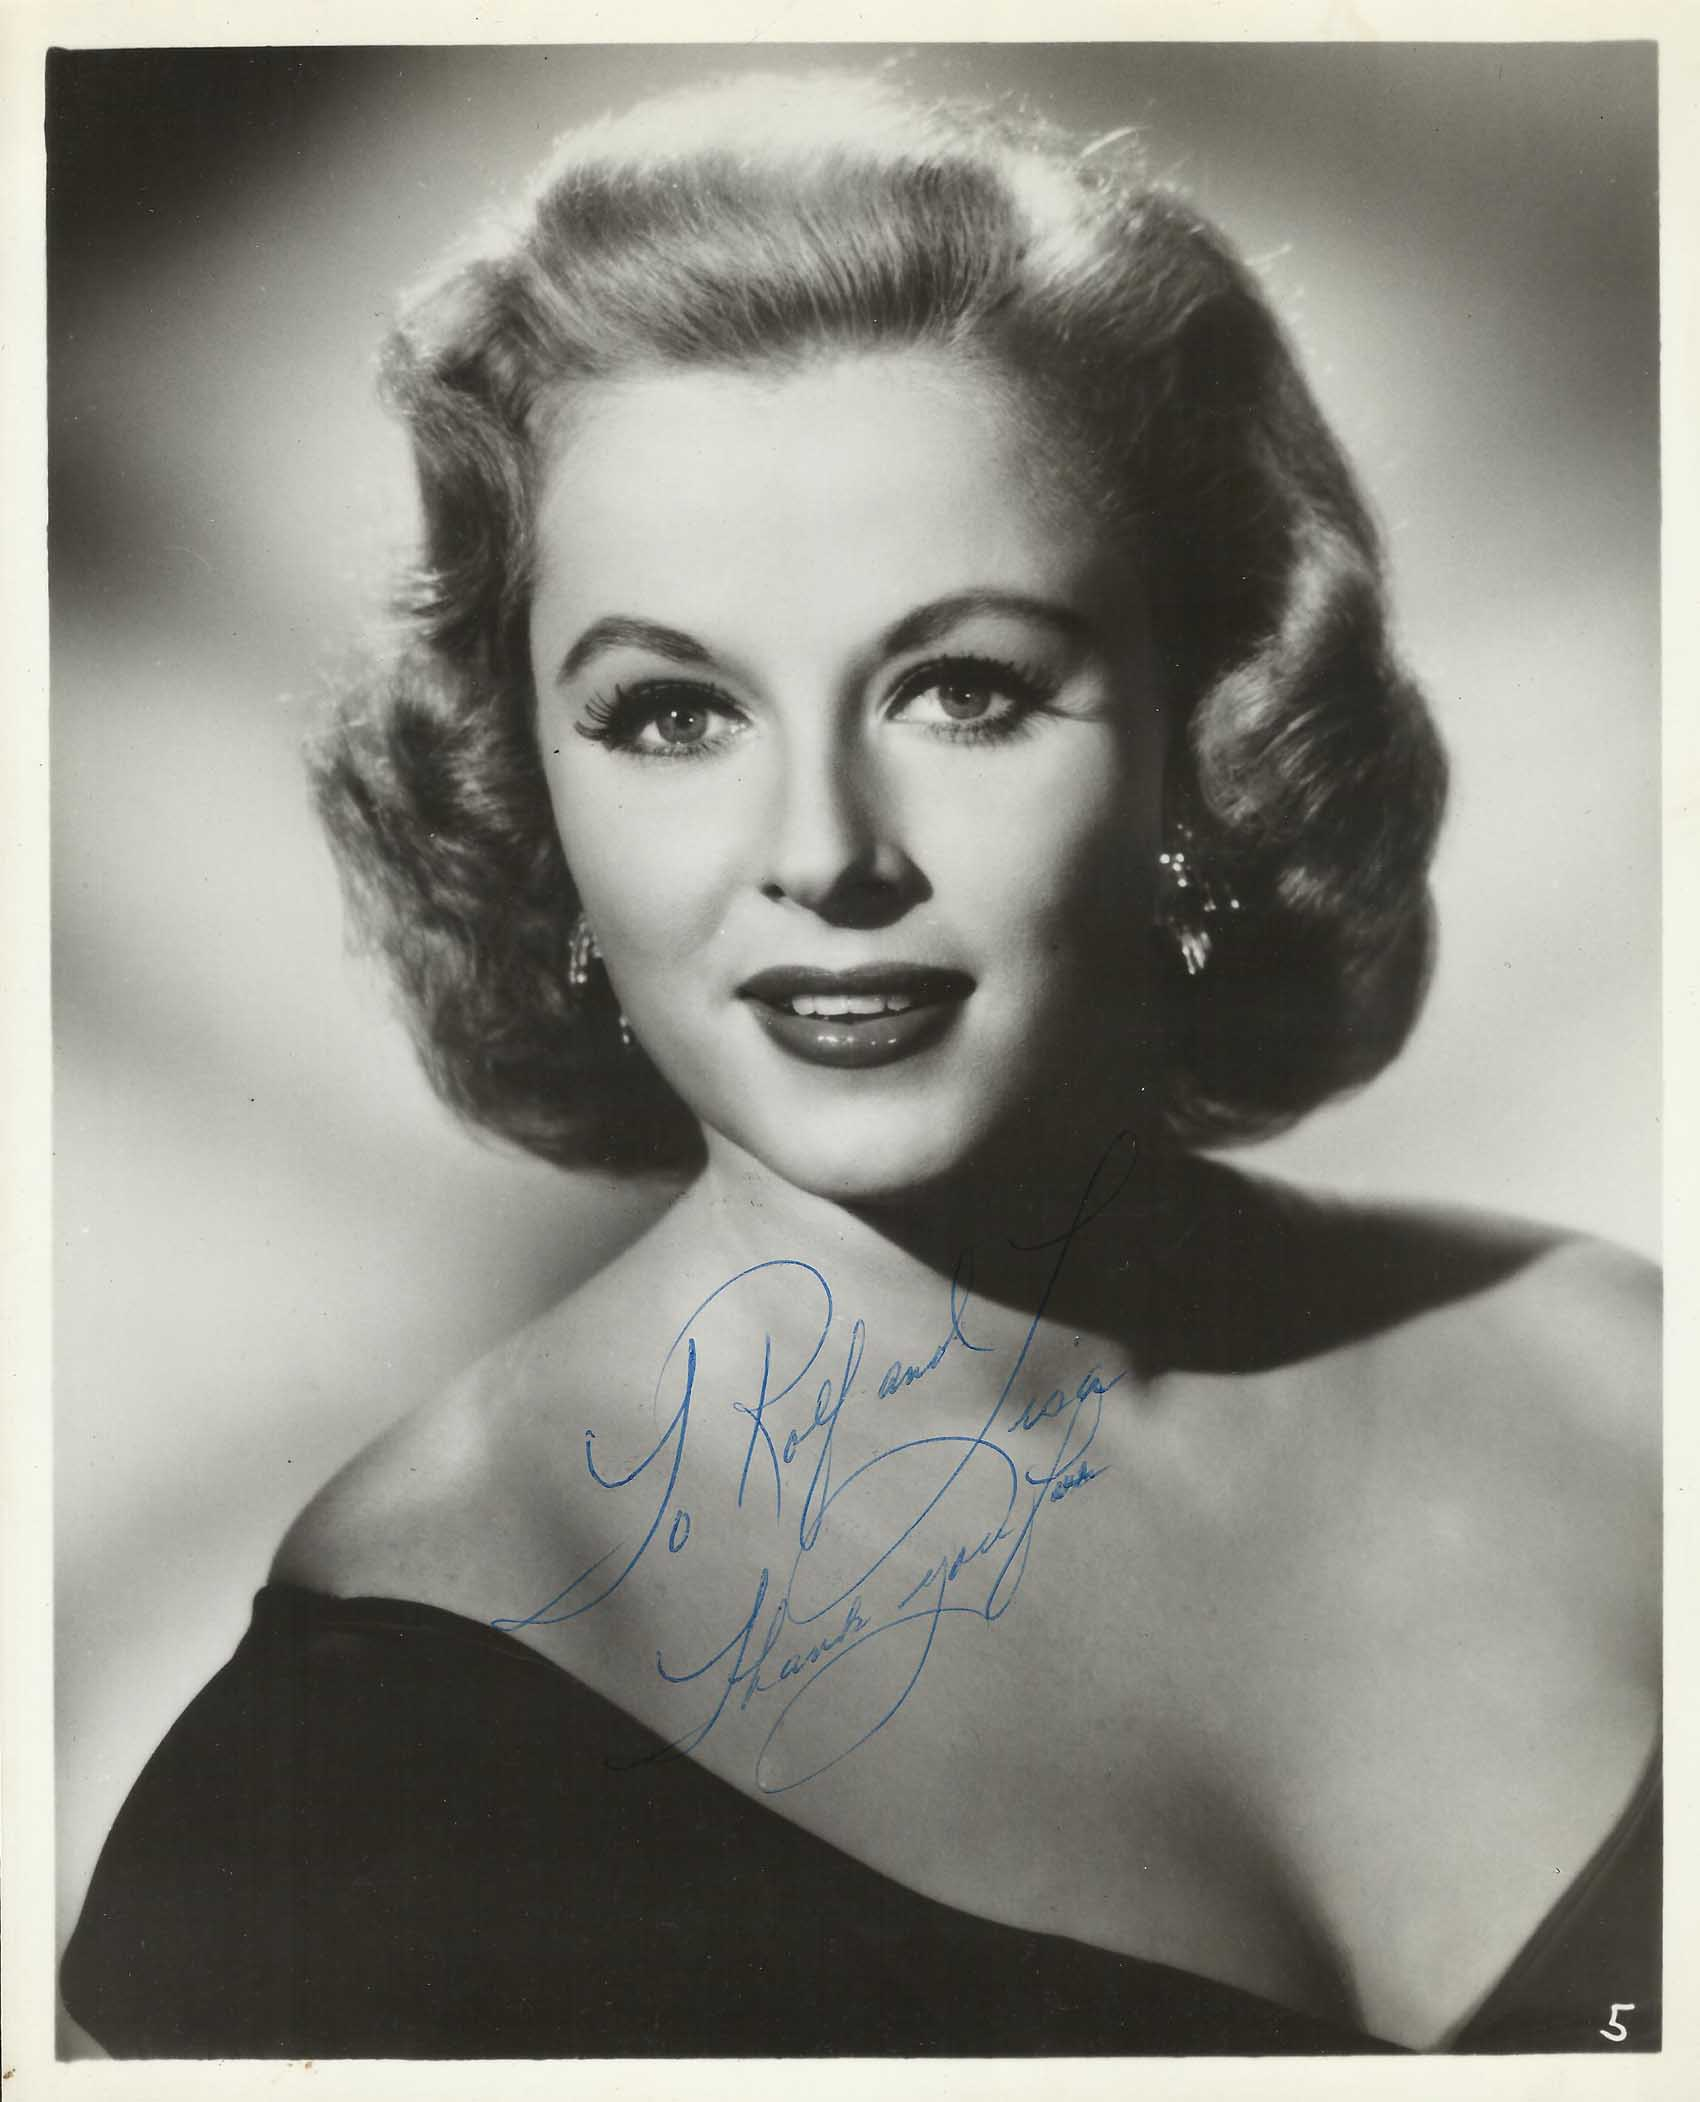 mary costa biographymary costa once upon a dream, mary costa soprano, mary costa, mary costa sleeping beauty, mary costa biography, mary costa and bill shirley, mary costa aurora, mary costa once upon a dream lyrics, mary costa opera singer, mary costa 2015, mary costa singing, mary costa photography, mary costa facebook, mary costa 2014, mary costa fan mail, mary costa lincoln center, mary costa model, mary costa net worth, mary costa instagram, mary costa interview